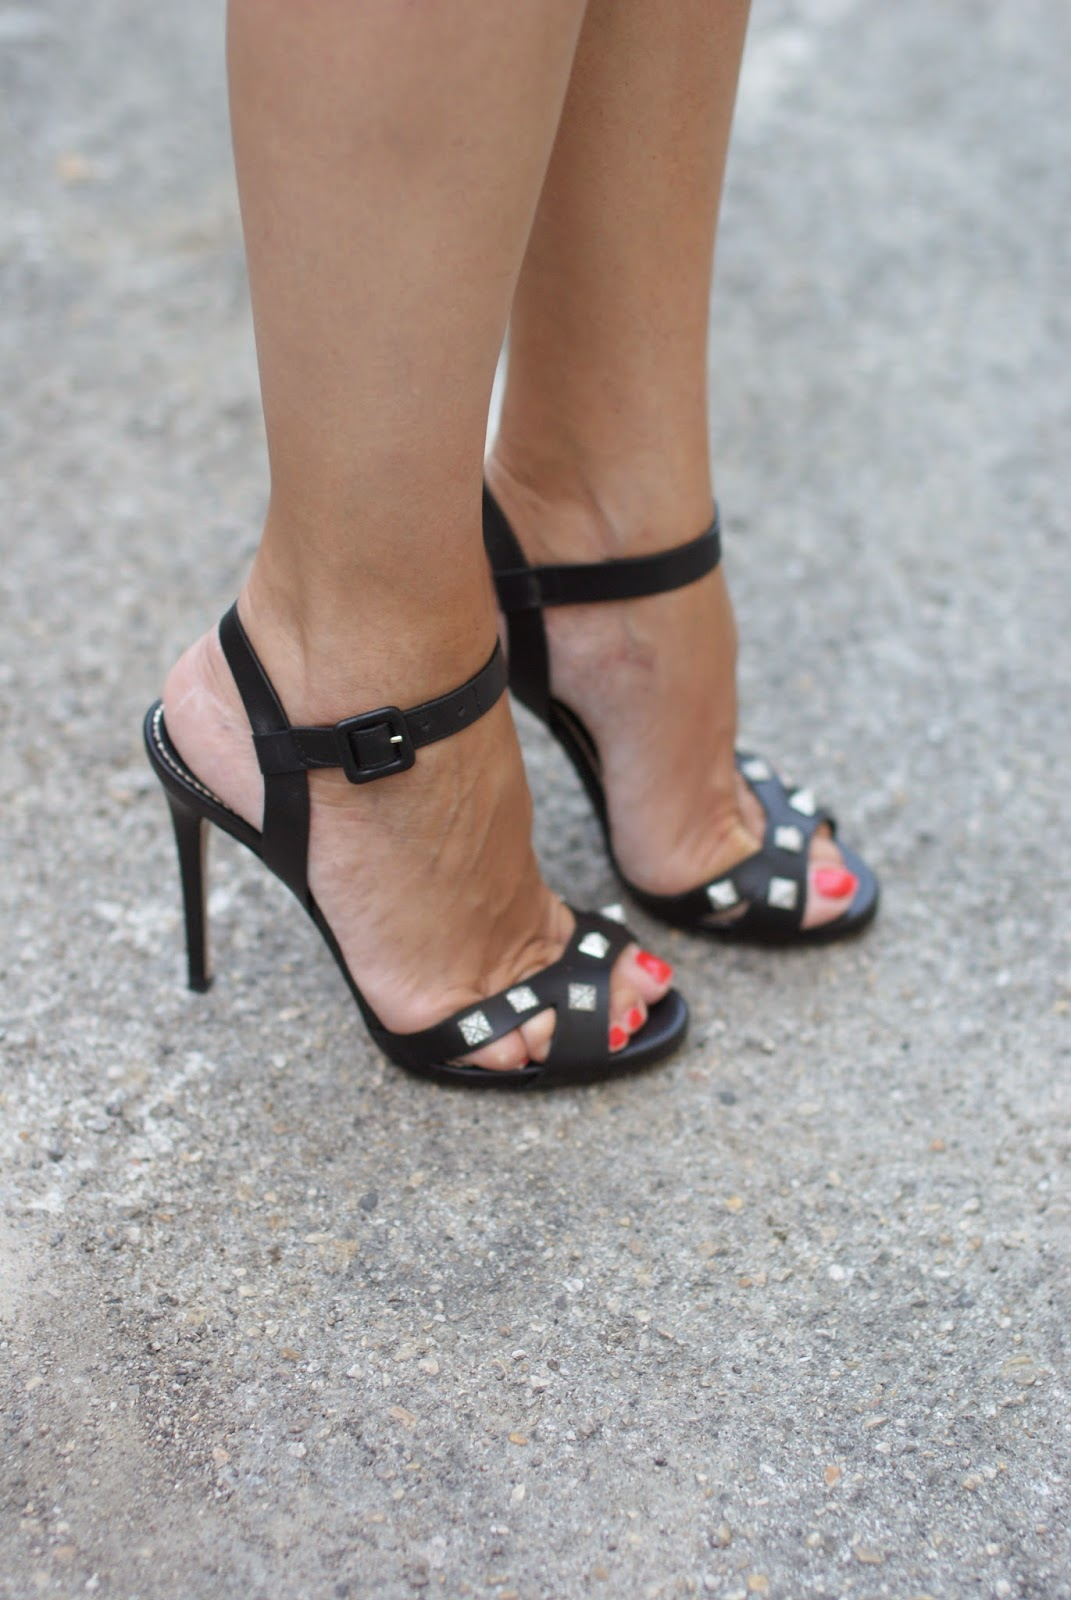 Le silla black sandals, red toes in heels, Fashion and Cookies, fashion blogger